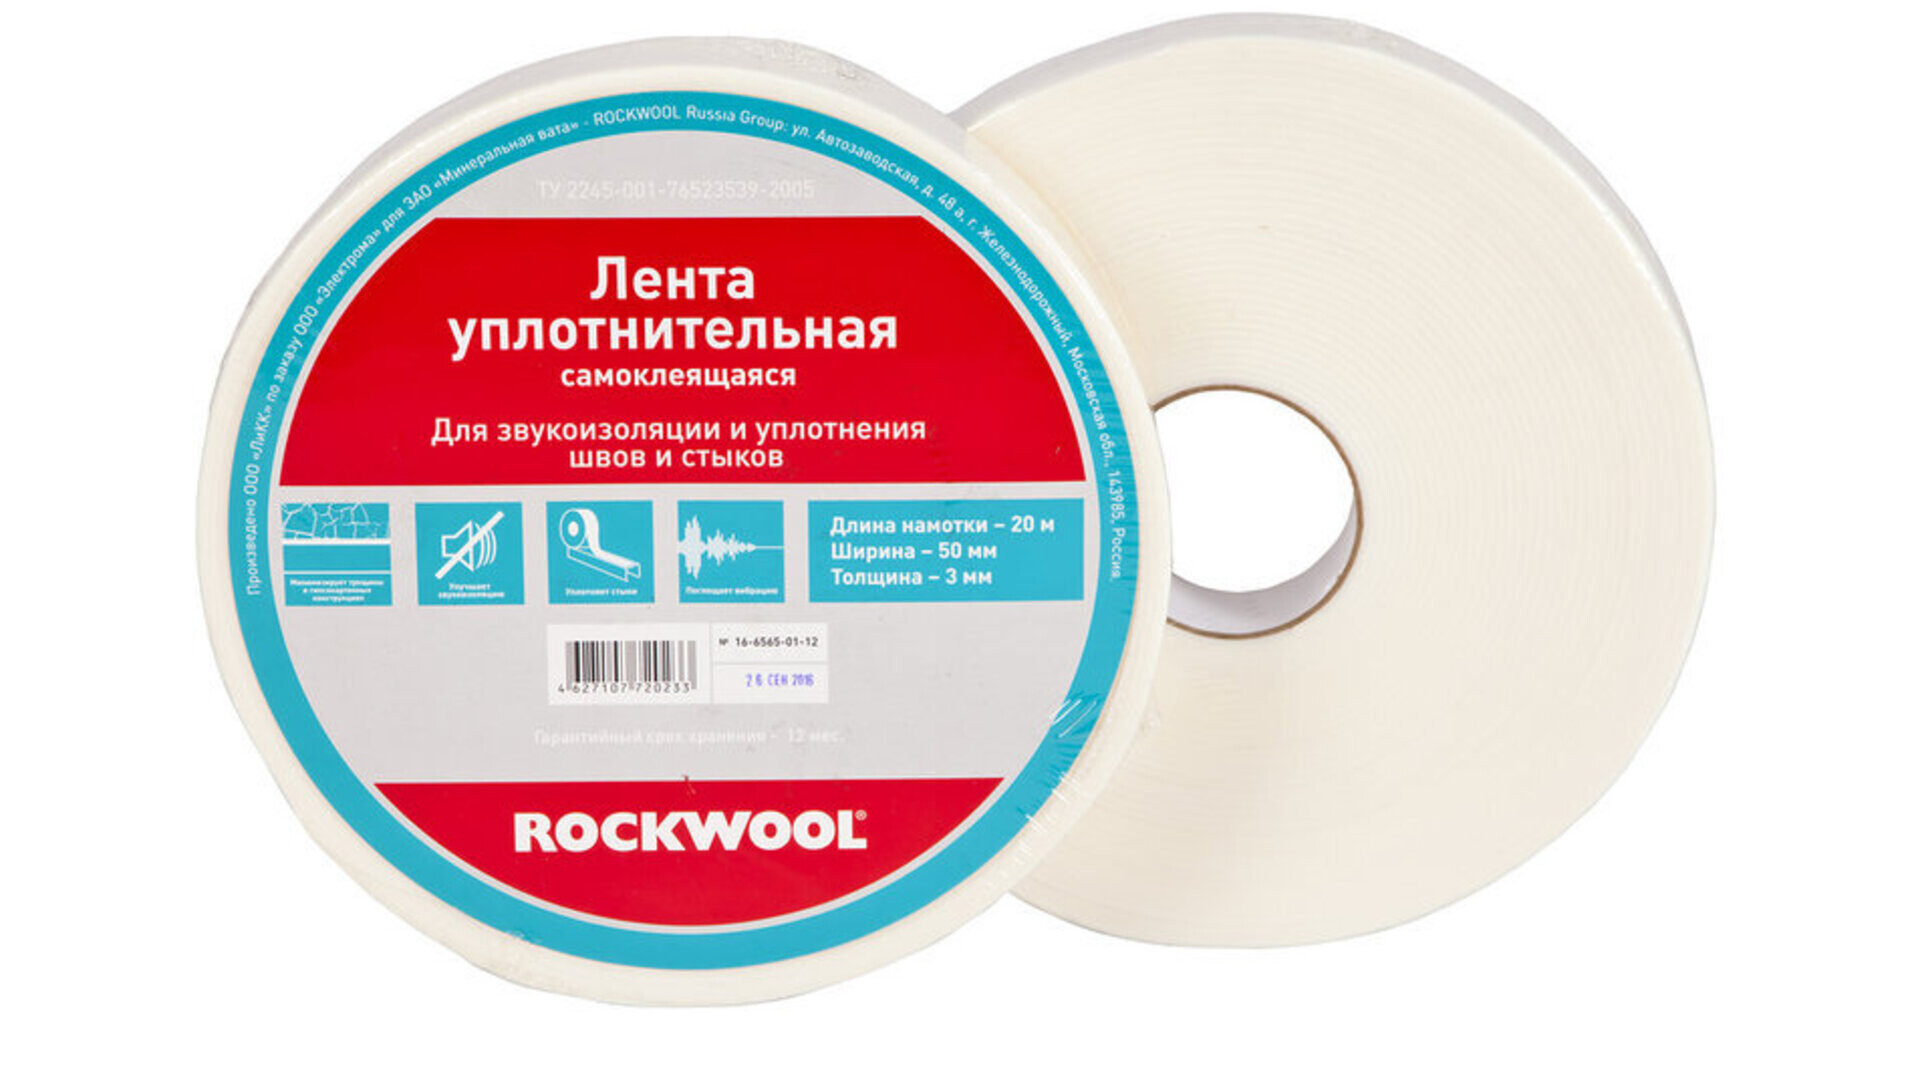 Sealing tape, package, product, components,  acoustics, Process industry